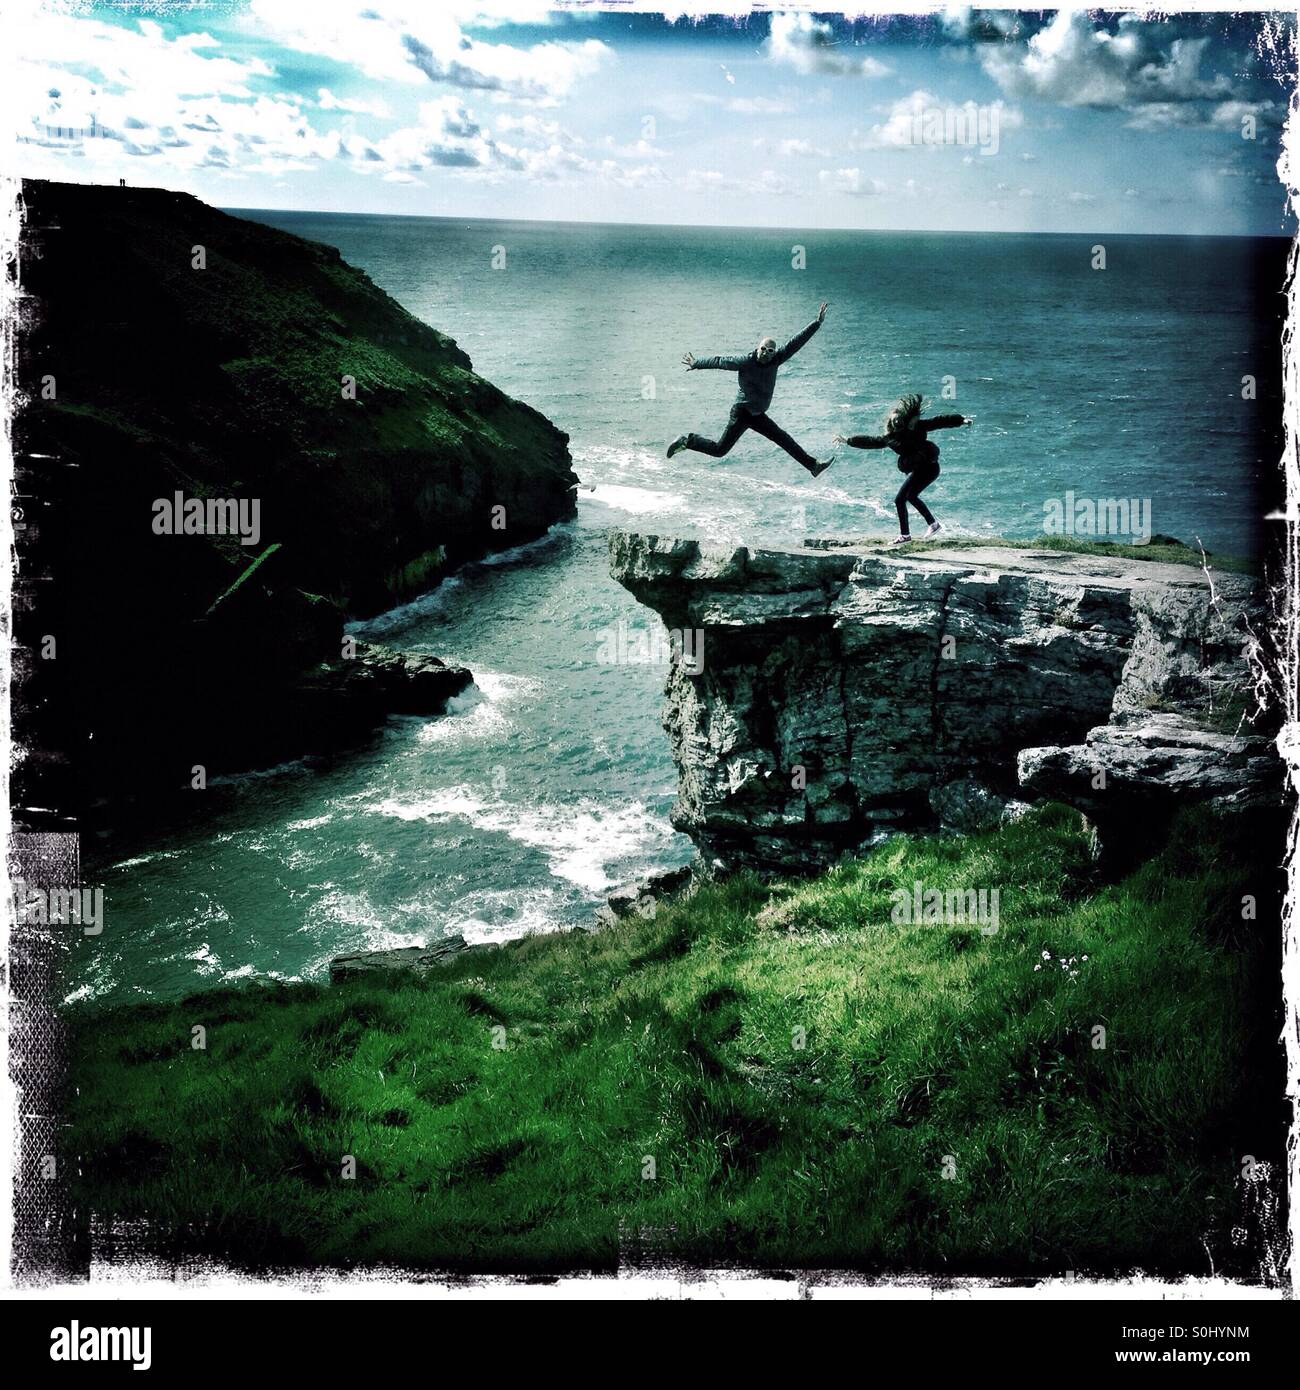 People jump in the air while posing for a photograph on the coastal path in Cornwall, England. - Stock Image